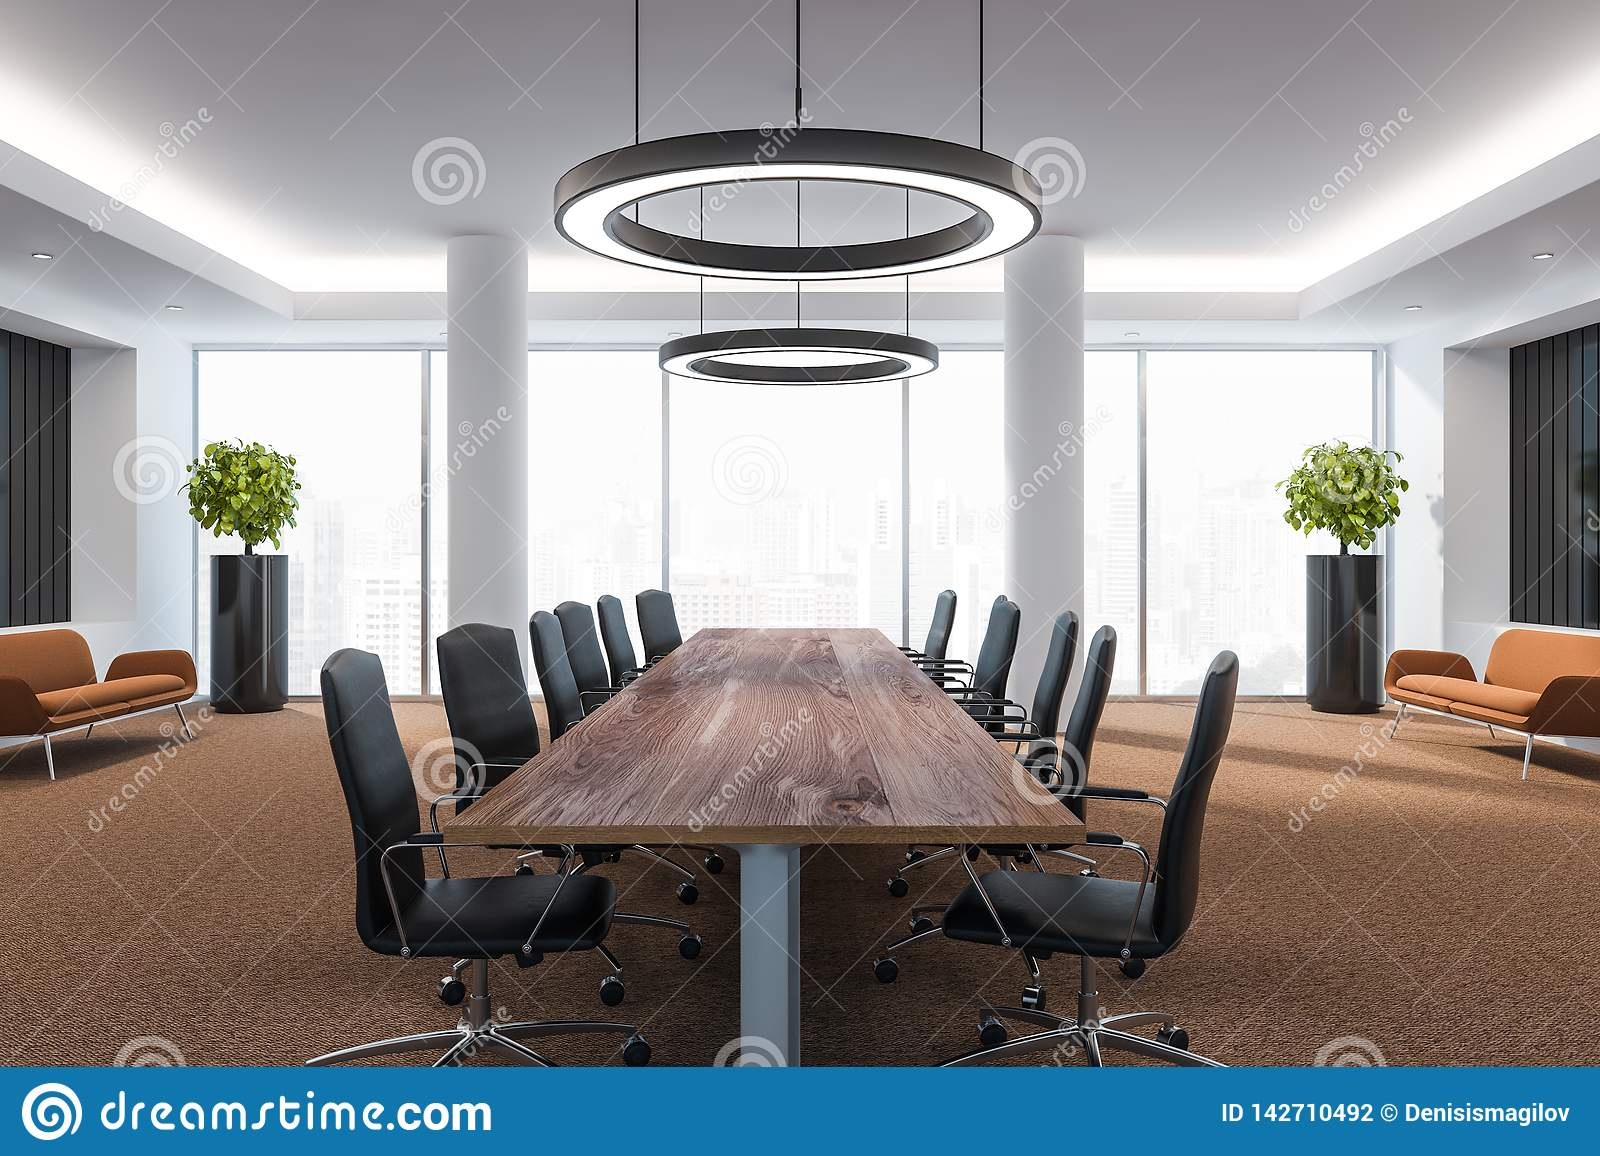 Business Conference Room With Furniture, Big Windows And City View 3D  Render Stock Illustration - Illustration of ornate, consult: 142710492